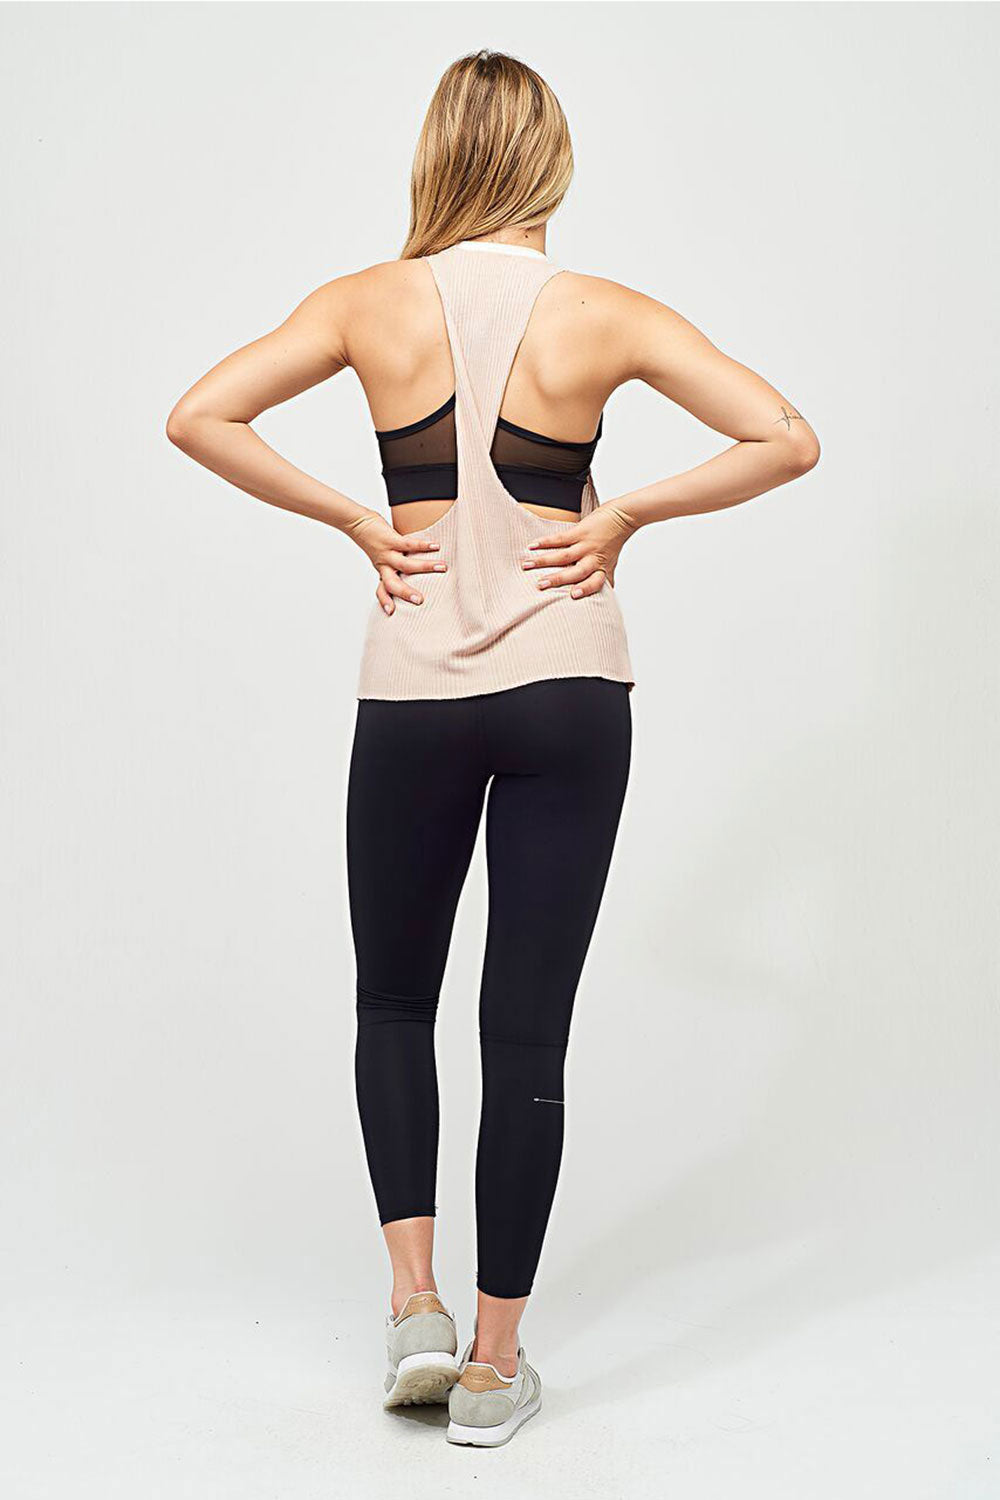 Phases Tank - Taupe Thermal